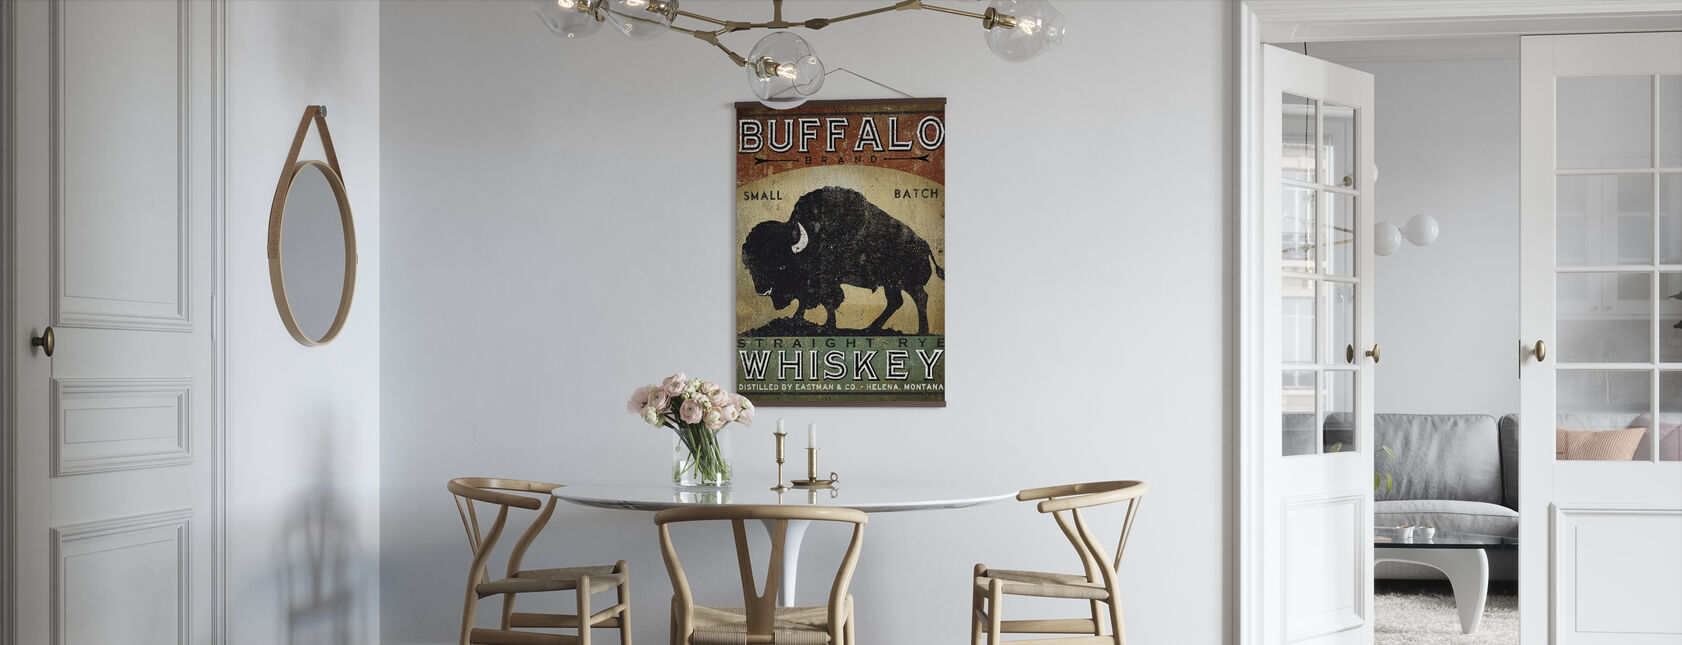 Buffalo Whisky - Affiche - Cuisine